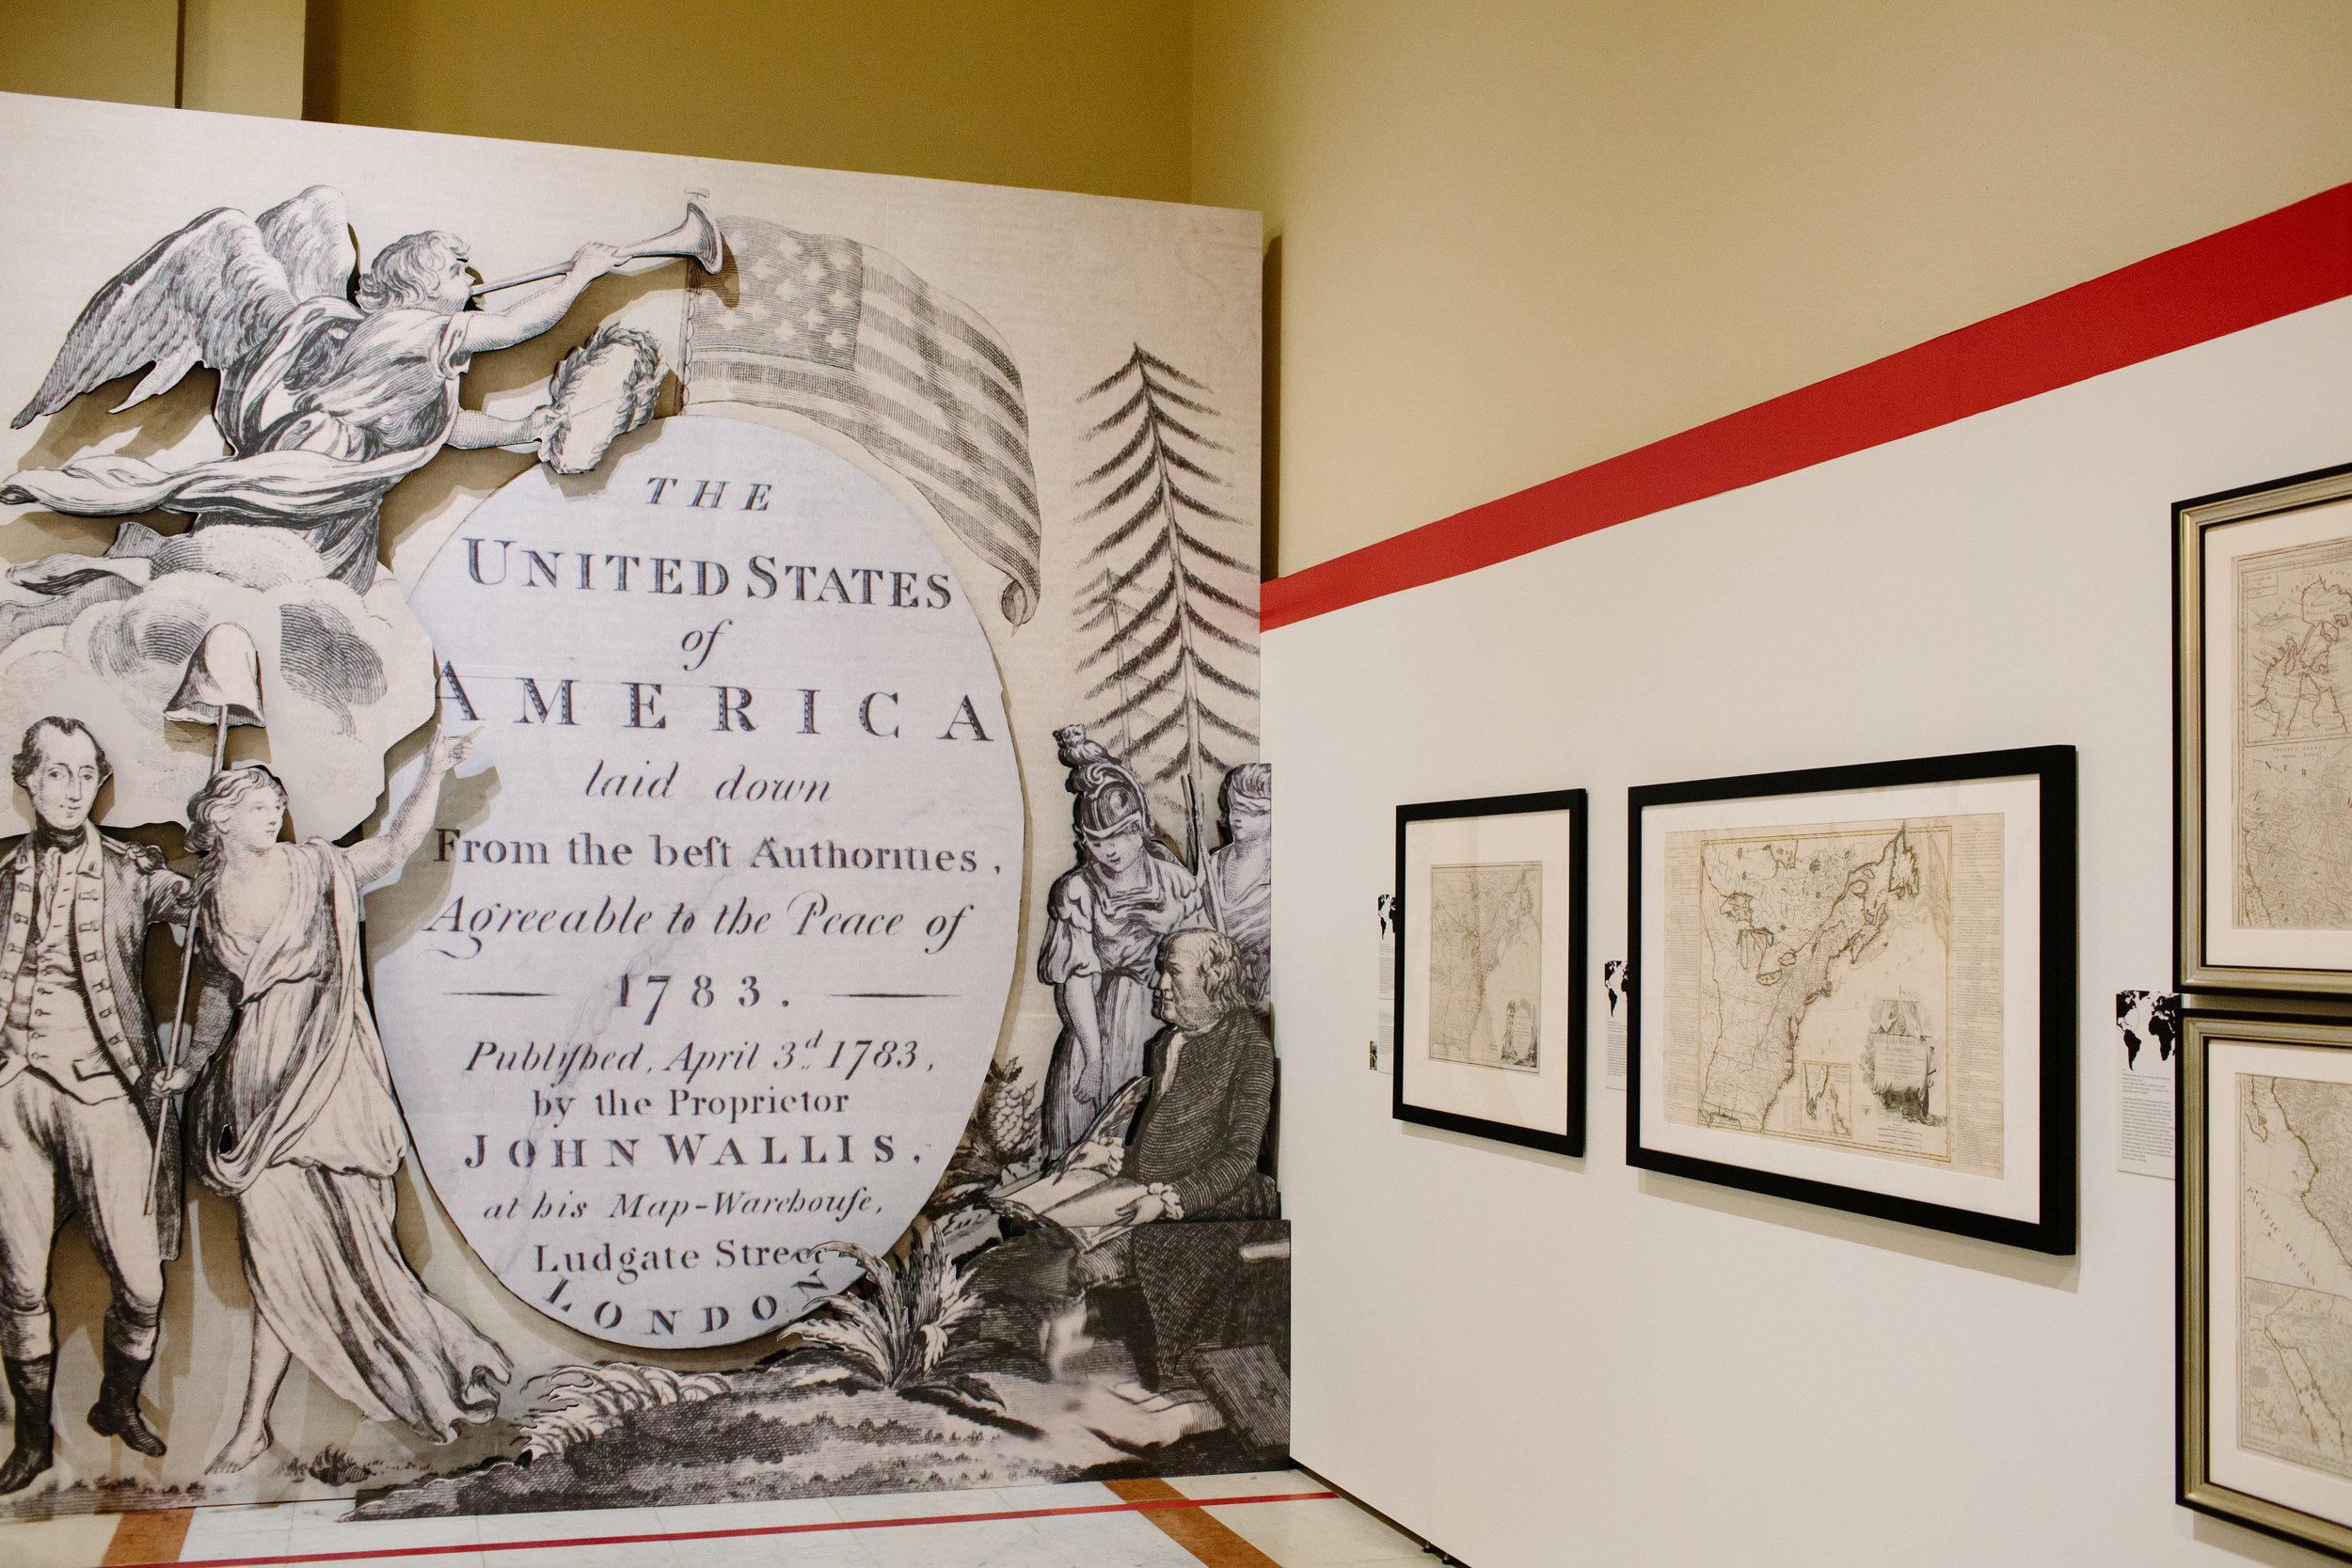 John Wallis, The United States of America Laid Down from the Best Authorities, Agreeable to the Peace of 1783 London, 1783. Engraving, hand colored, 19 x 22.5 inches